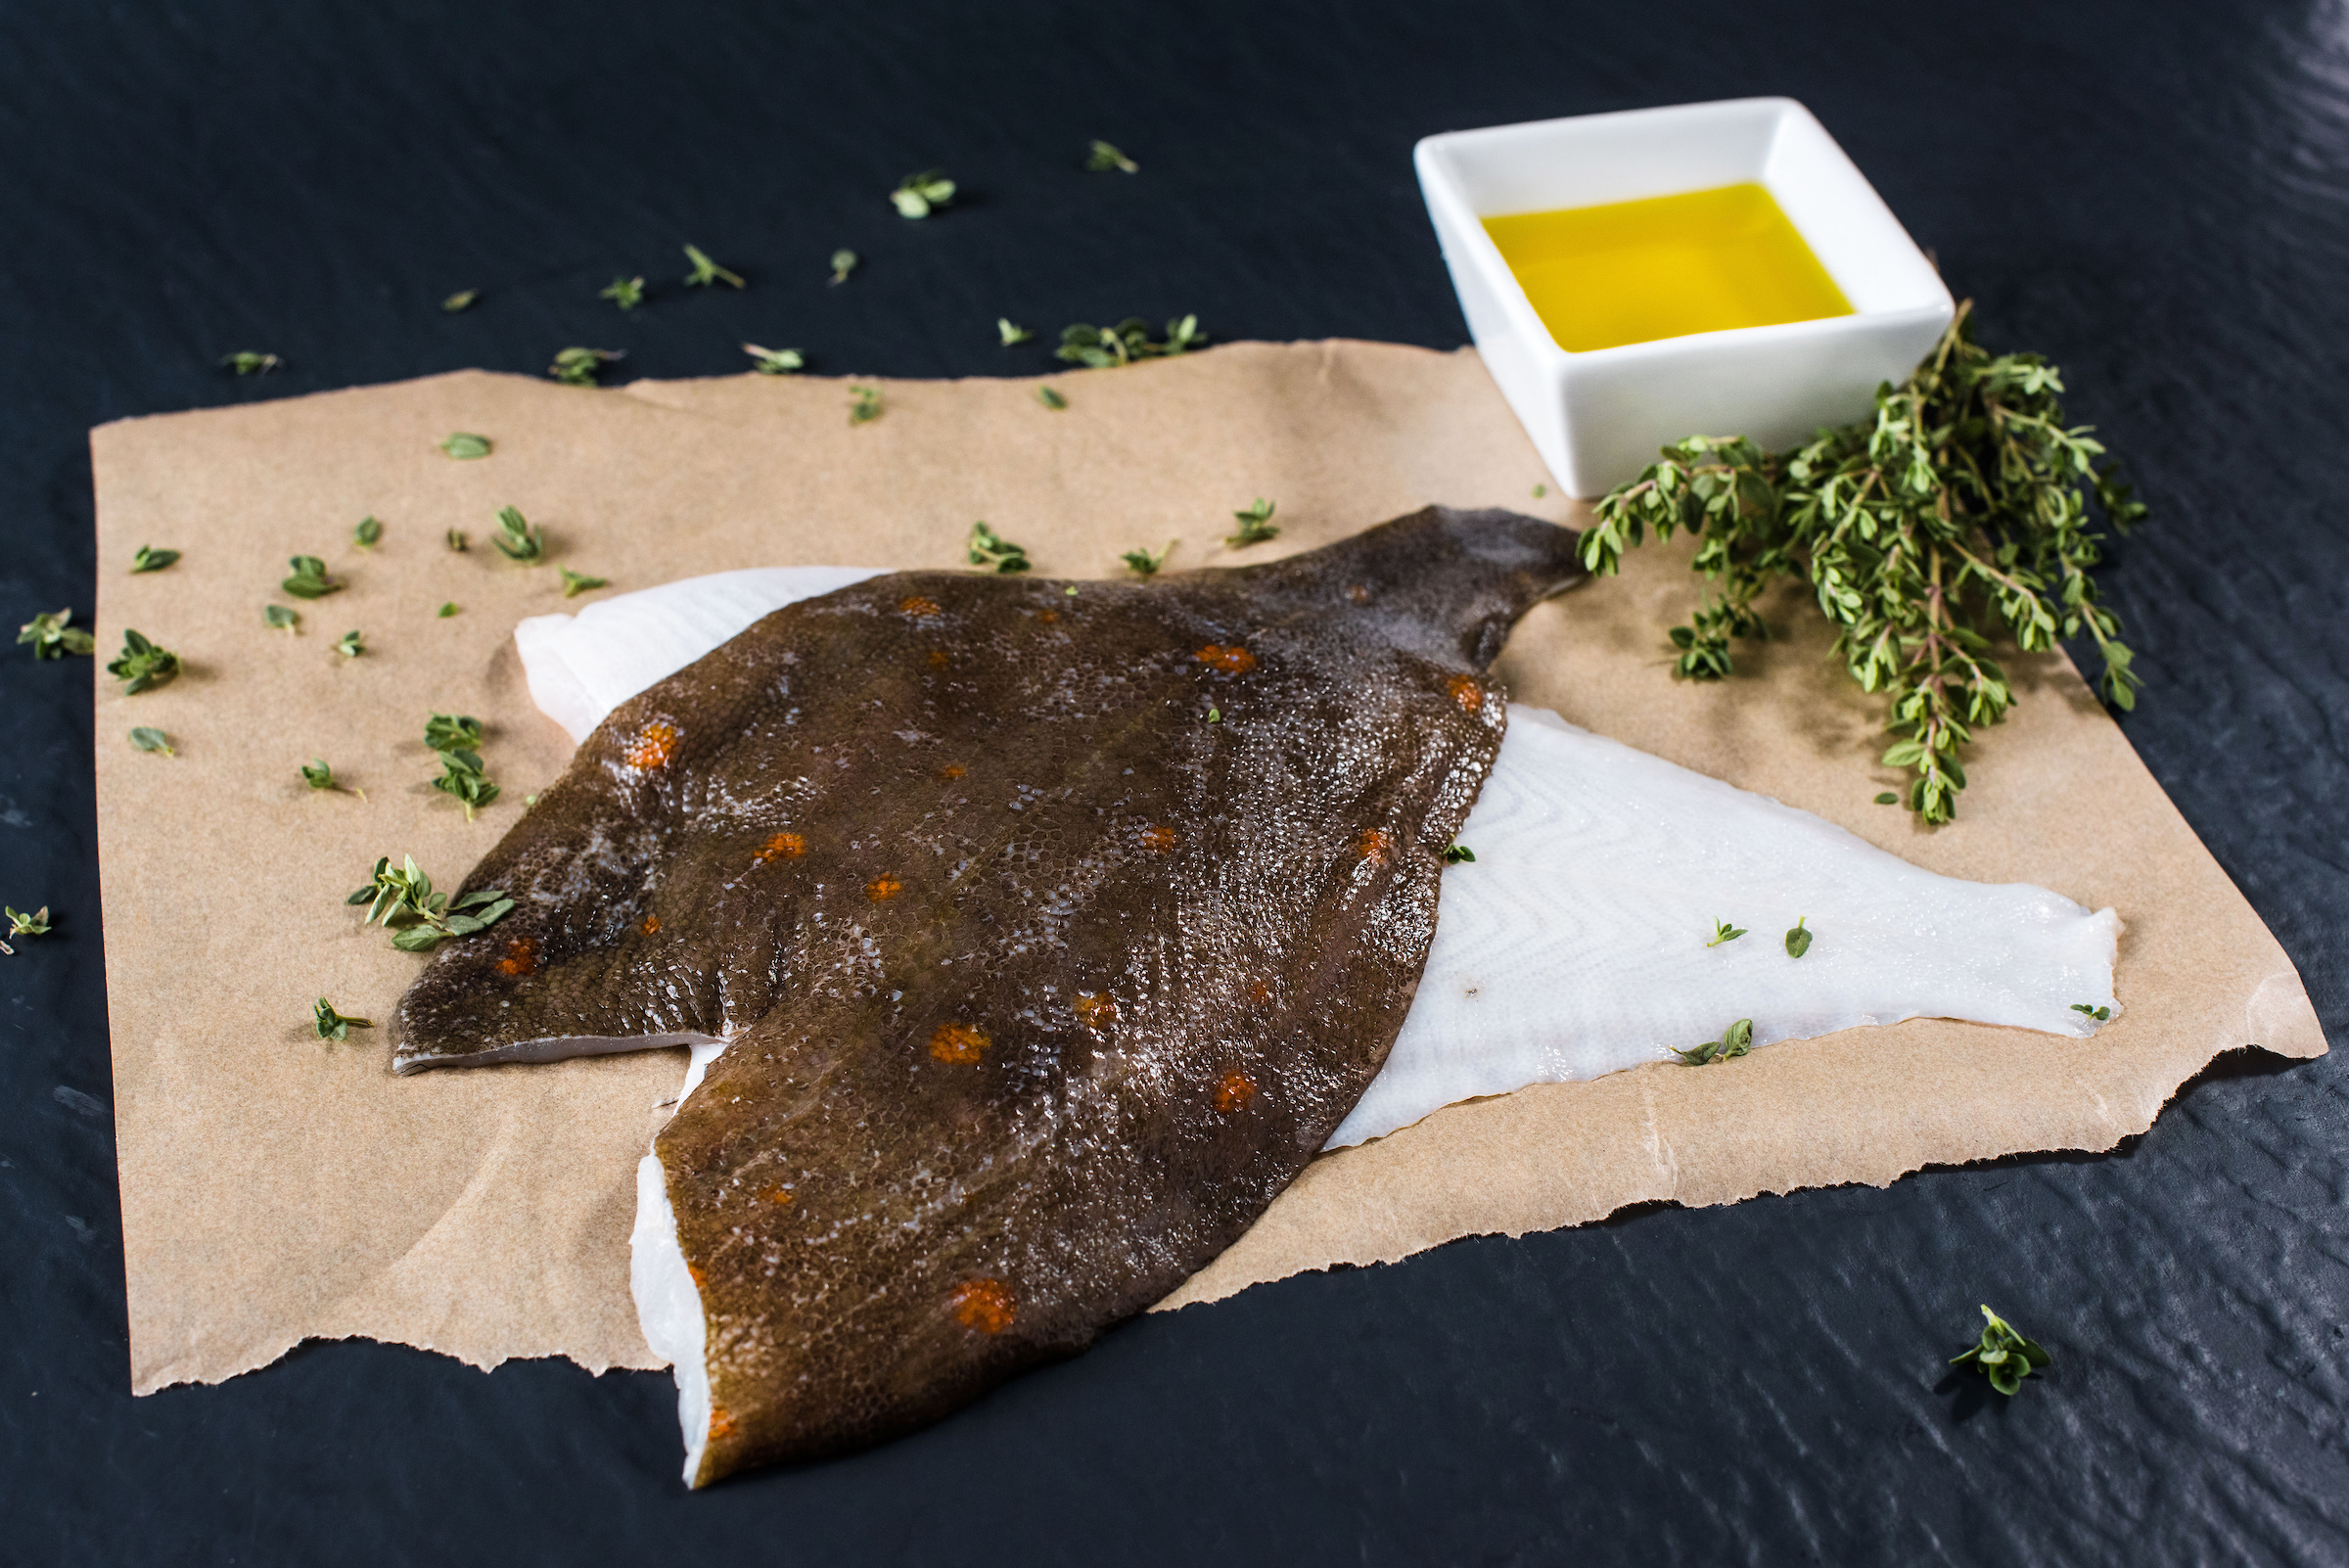 How to cook Plaice - Using scissors, cut the head, tail and fins off. Place the fish in tin foil with butter, lemon juice, salt and pepper. Then place in oven at 180 degrees for 15 or 20 minutes depending on size.